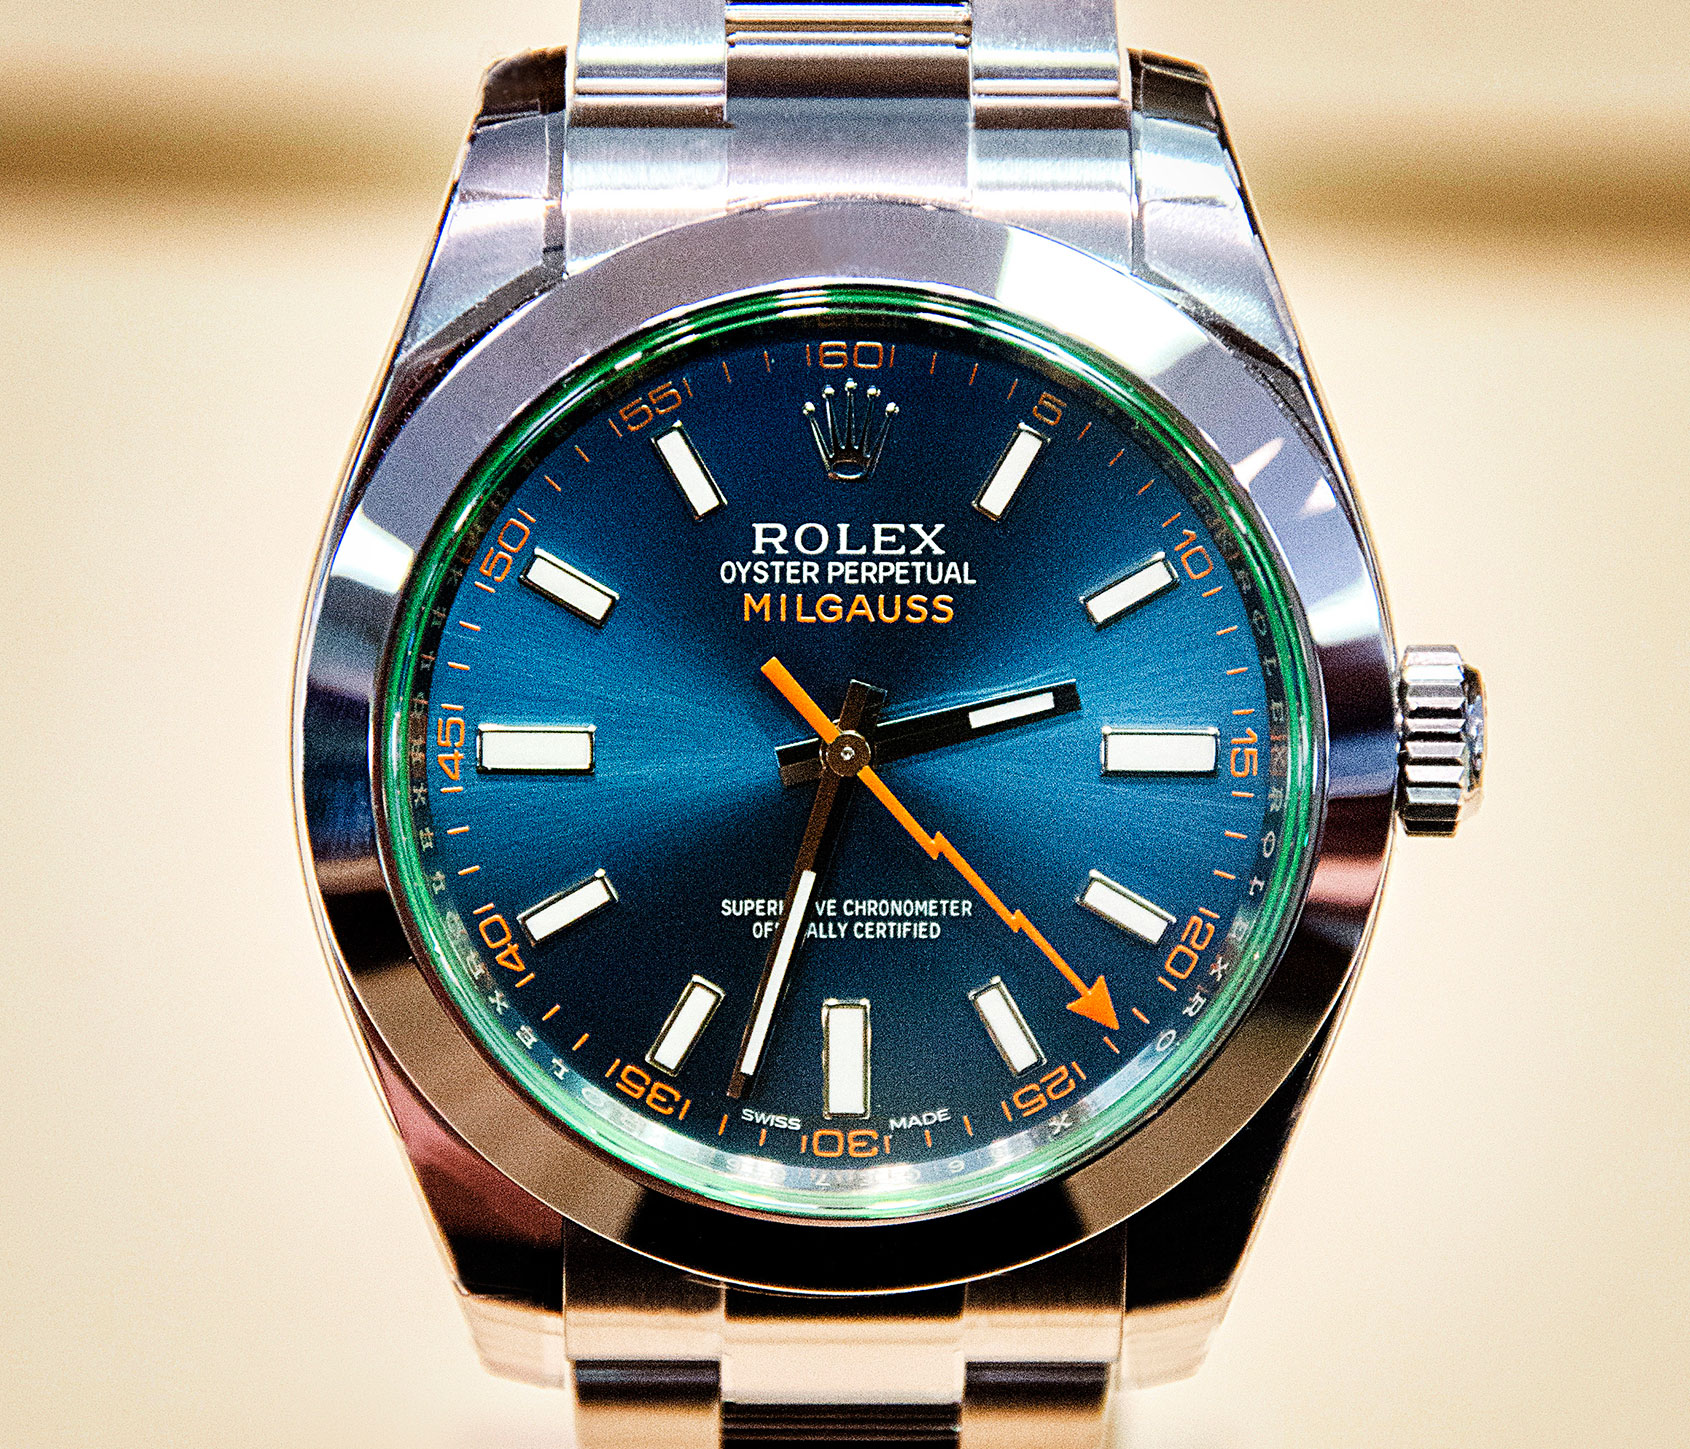 HANDS,ON The Rolex Milgauss Z,Blue \u2013 the rebel Rolex